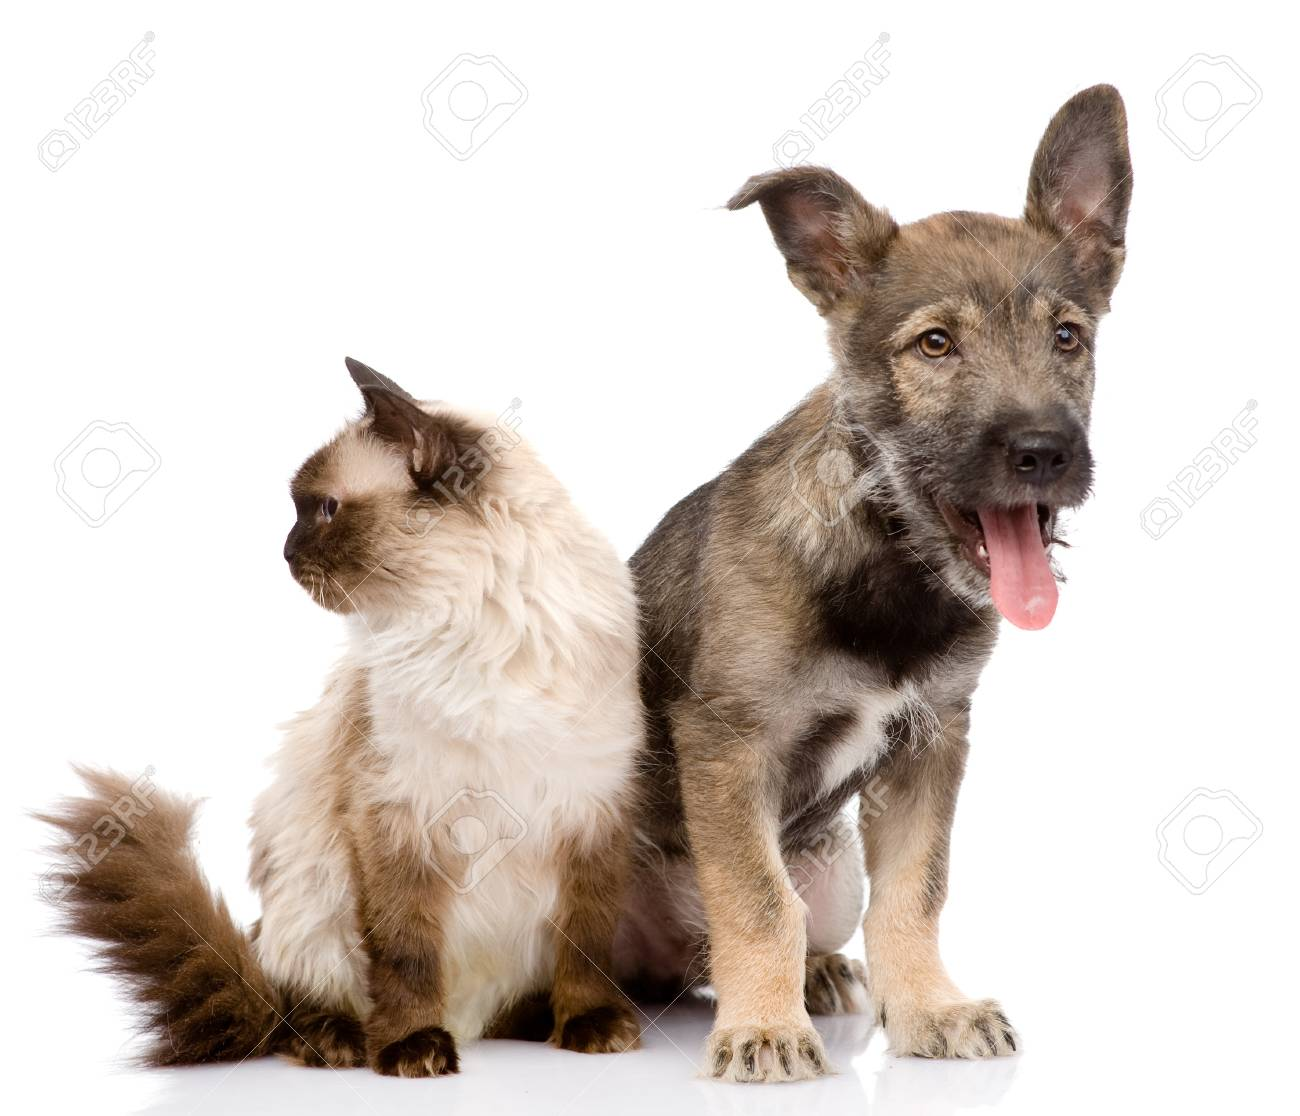 cat and dog together  focused on the cat  isolated on white Stock Photo - 21759182